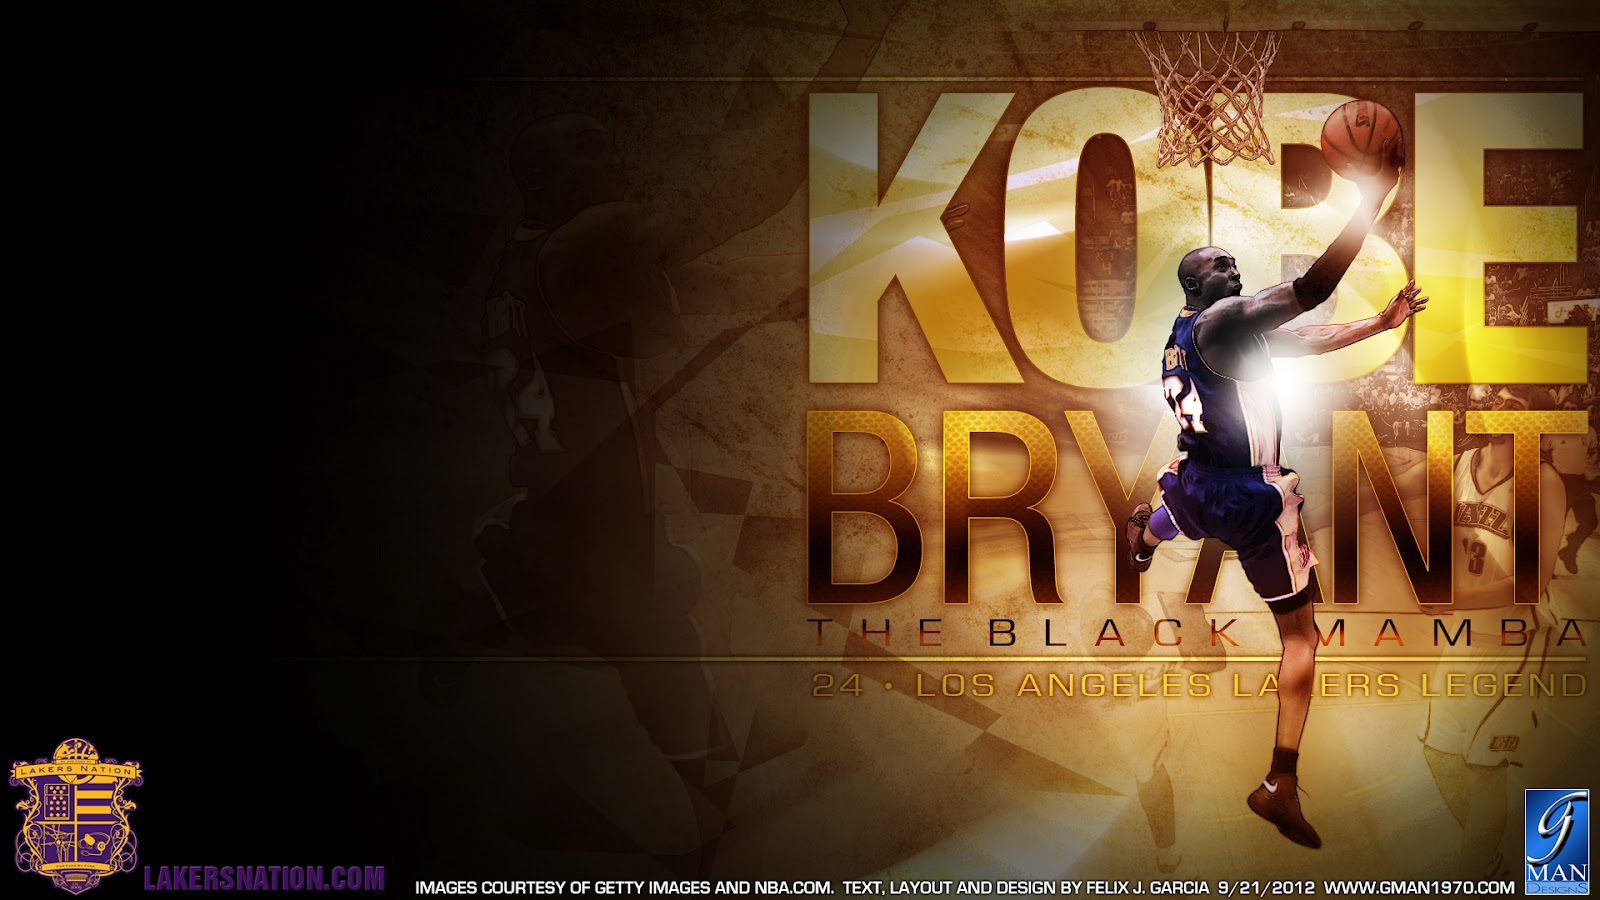 KOBE BRYANT BLACK MAMBA LAKERS LEGEND WALLPAPER